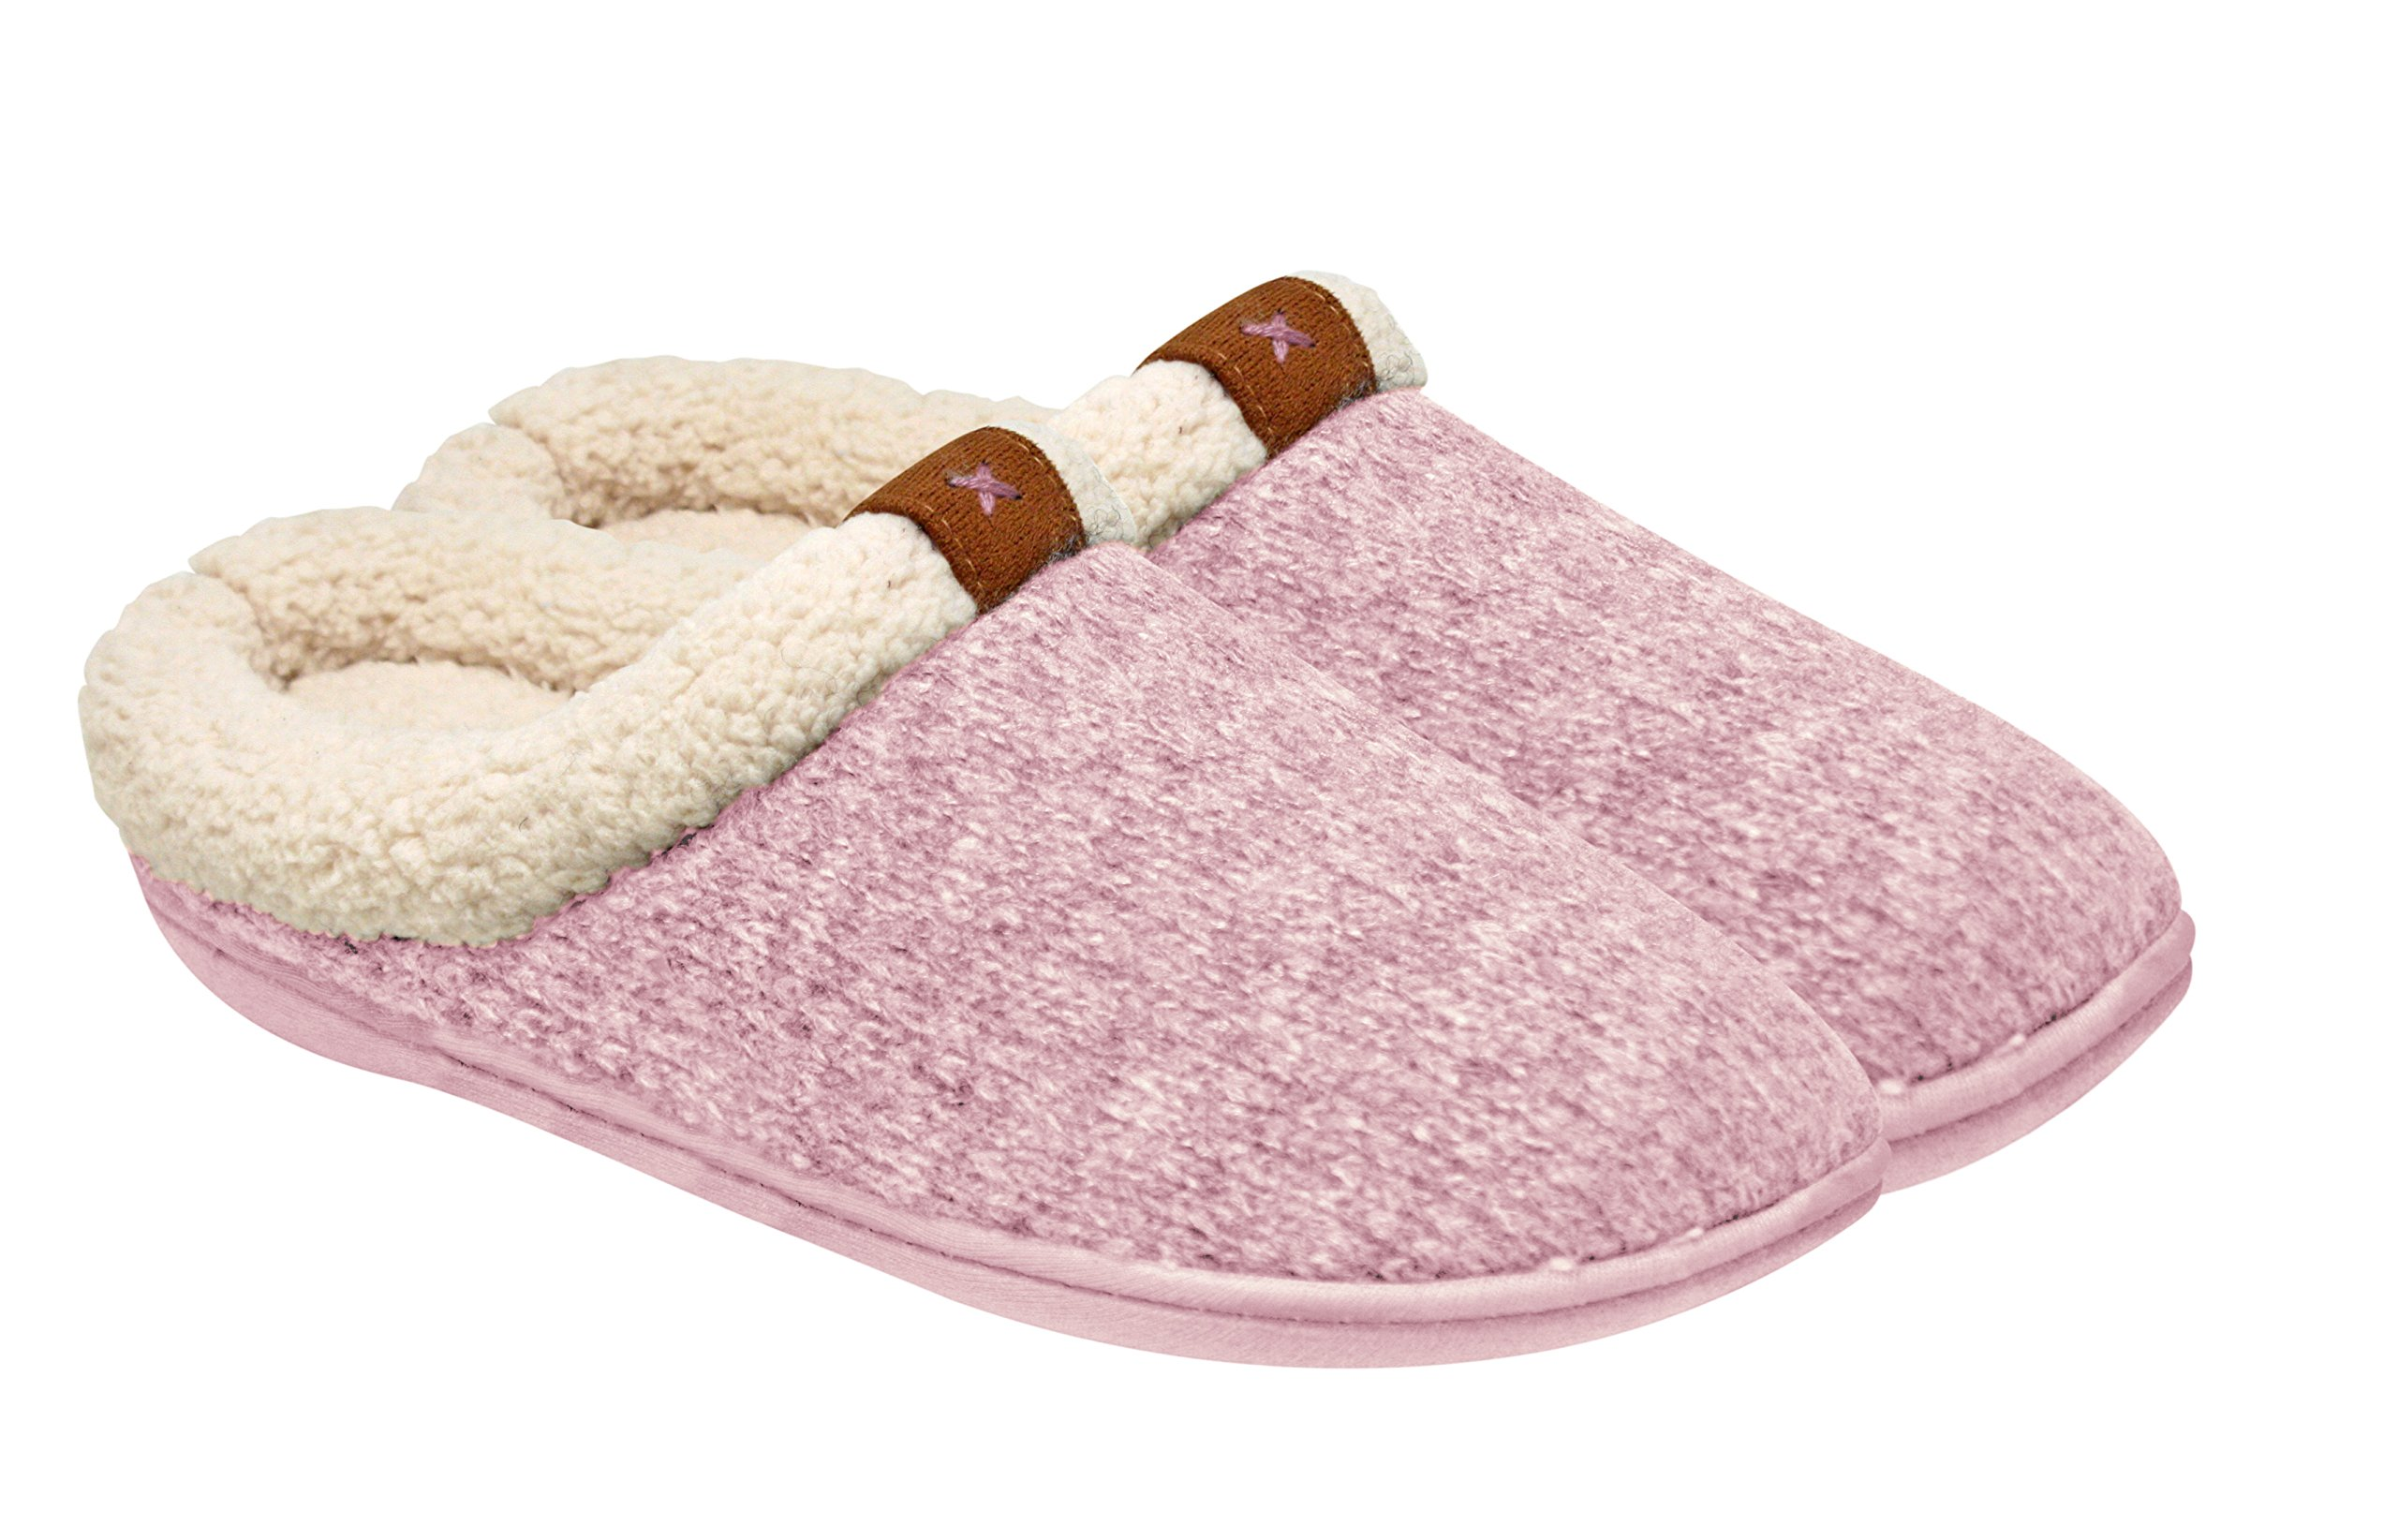 Adrienne Vittadini Women's Comfort Padded Memory Foam Sherpa Clog Slipper with Slip-Resistant Rubber Bottom Sole   Indoor/Outdoor, Pink, Small-Medium / 6-8 B(M) US